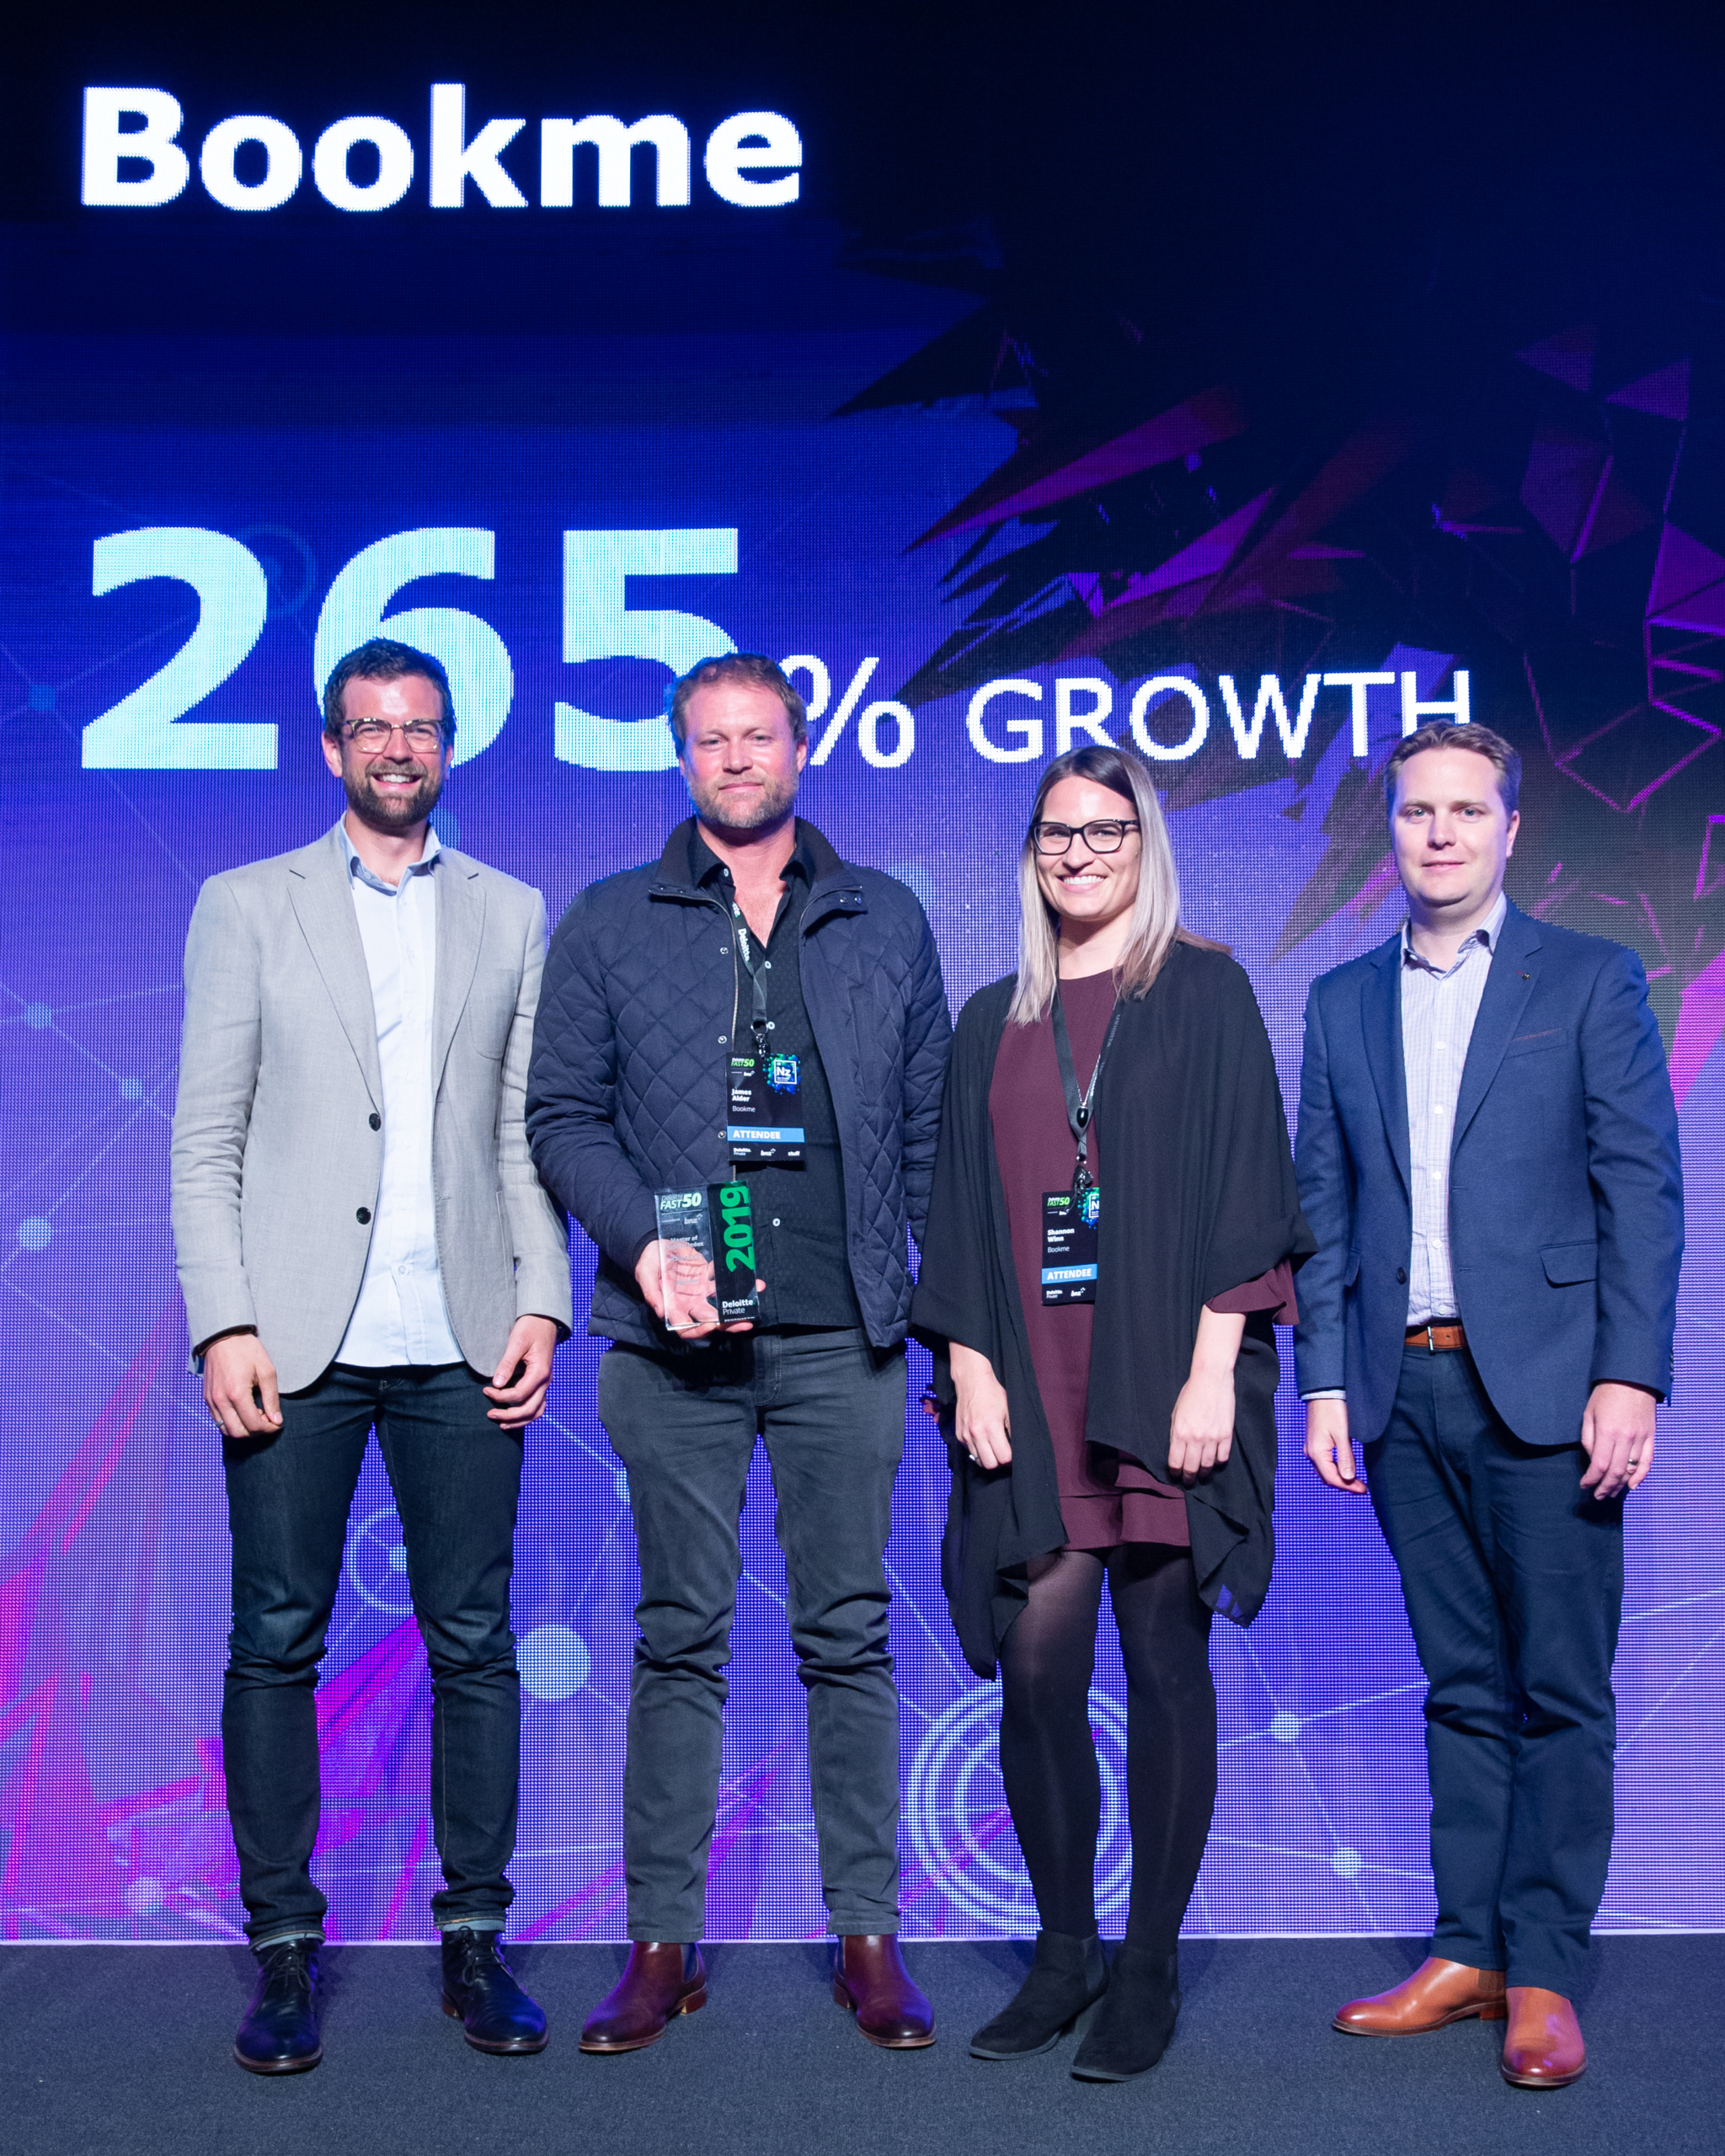 Major accolades for Kiwi success story Bookme